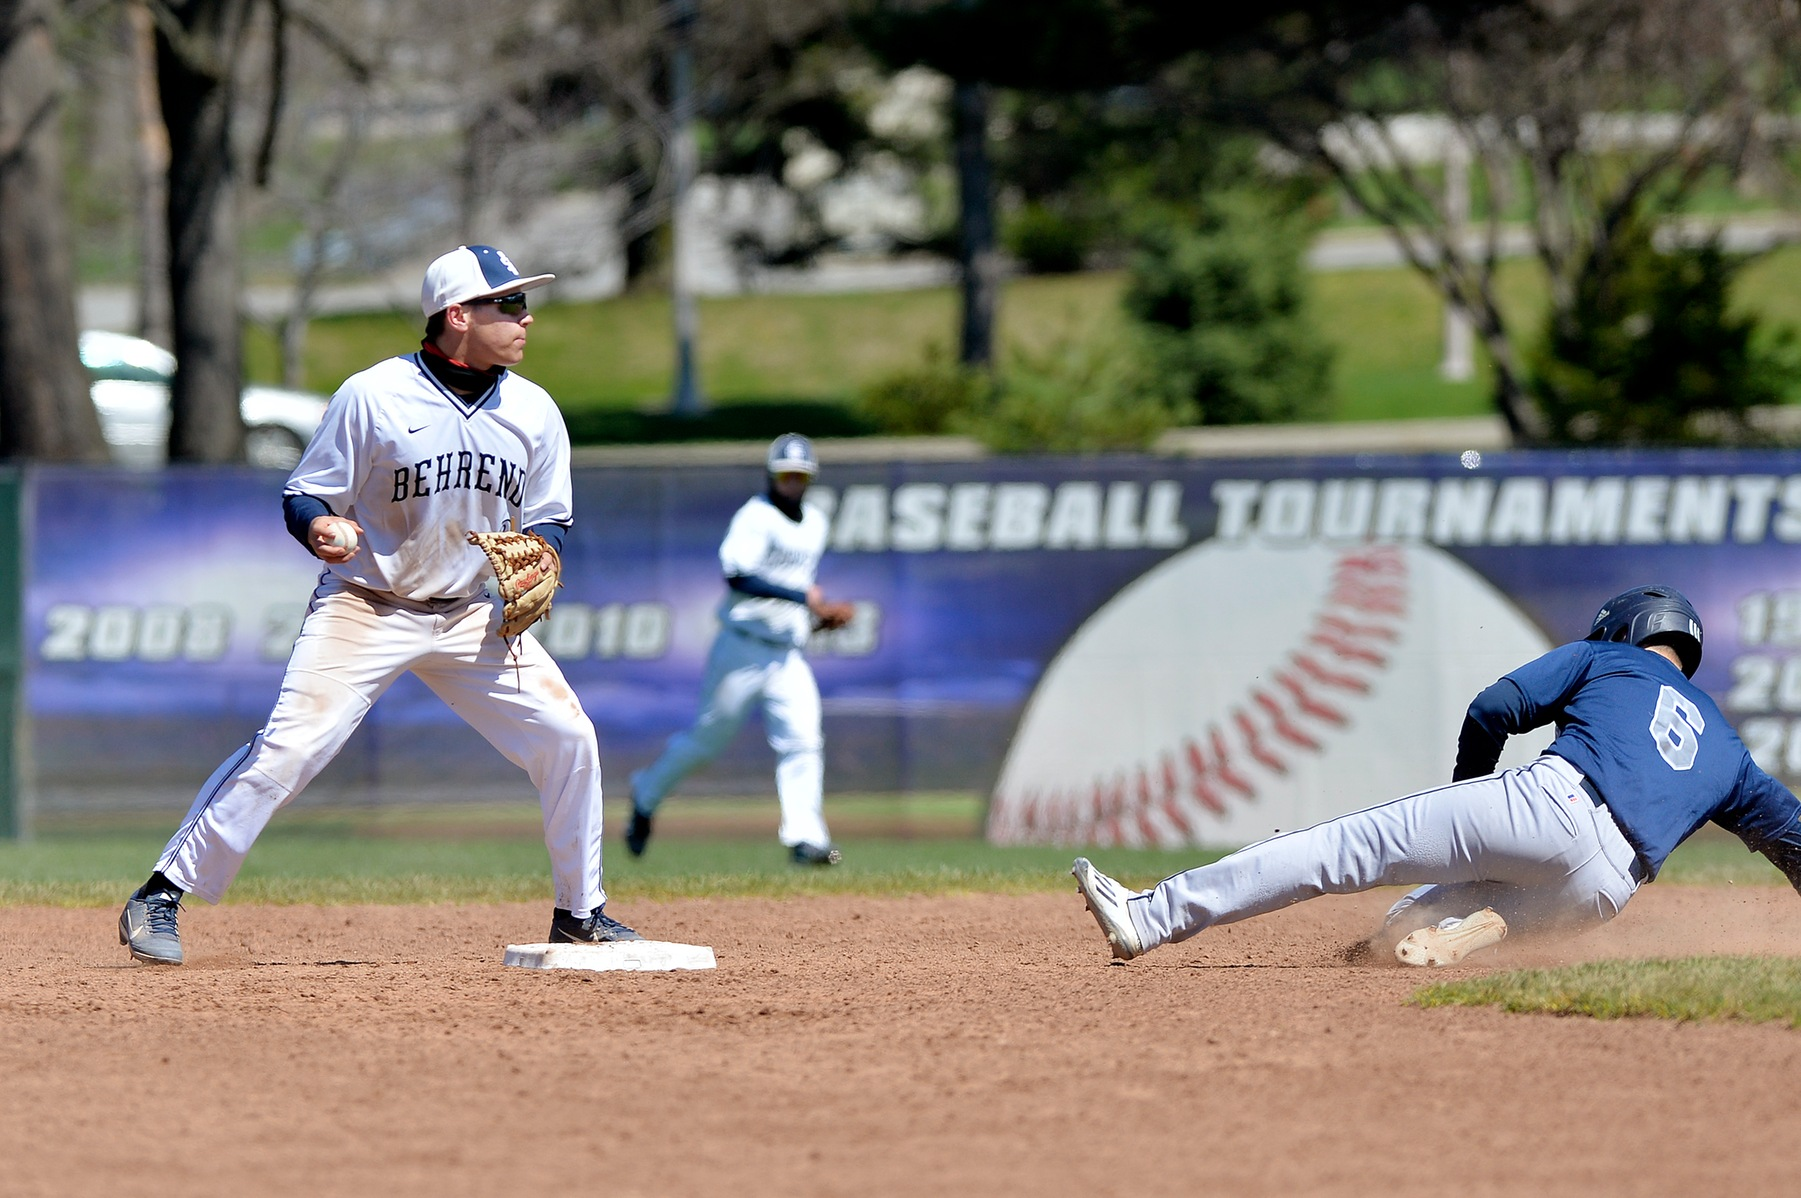 Bethany Tops Baseball on Walk-Off Winner